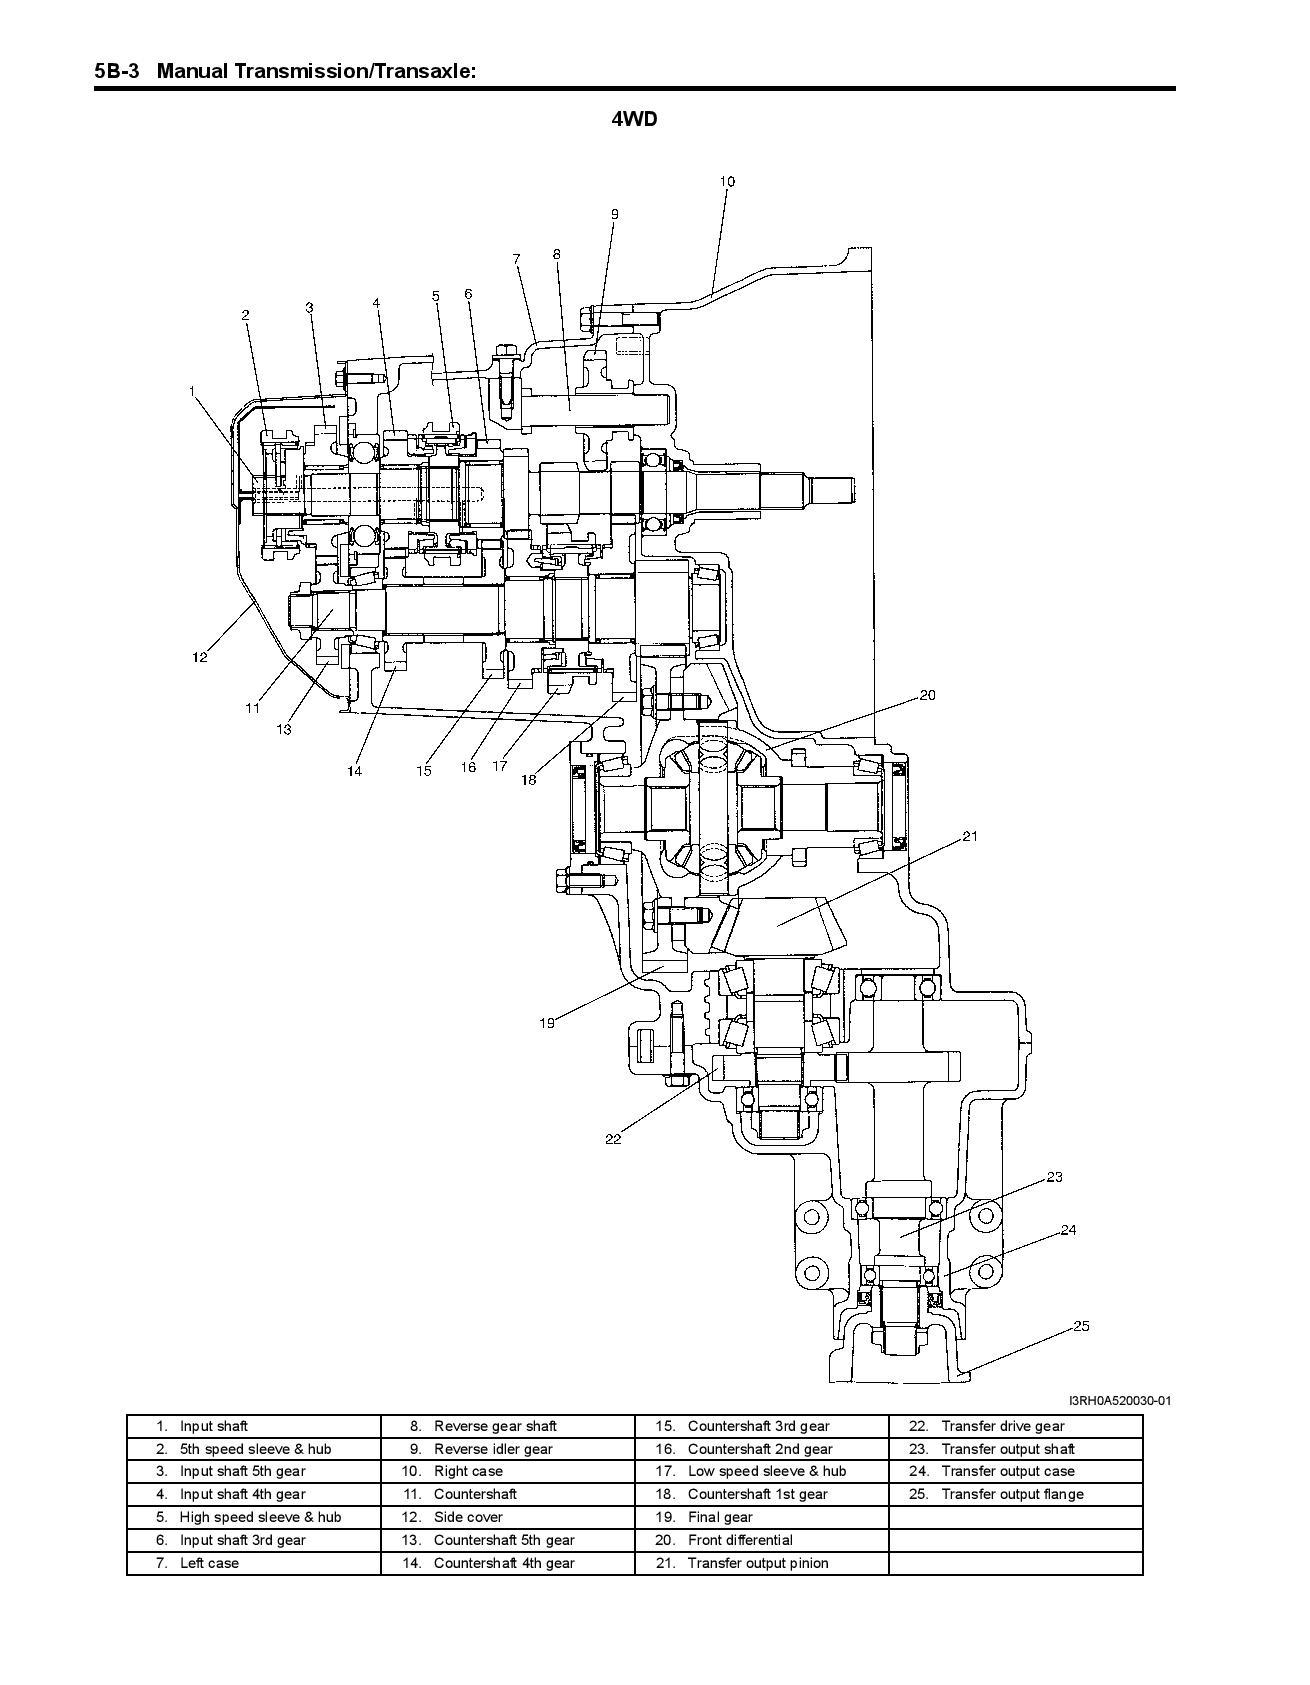 Suzuki Aerio Manual Transmission | Wiring Diagram Database